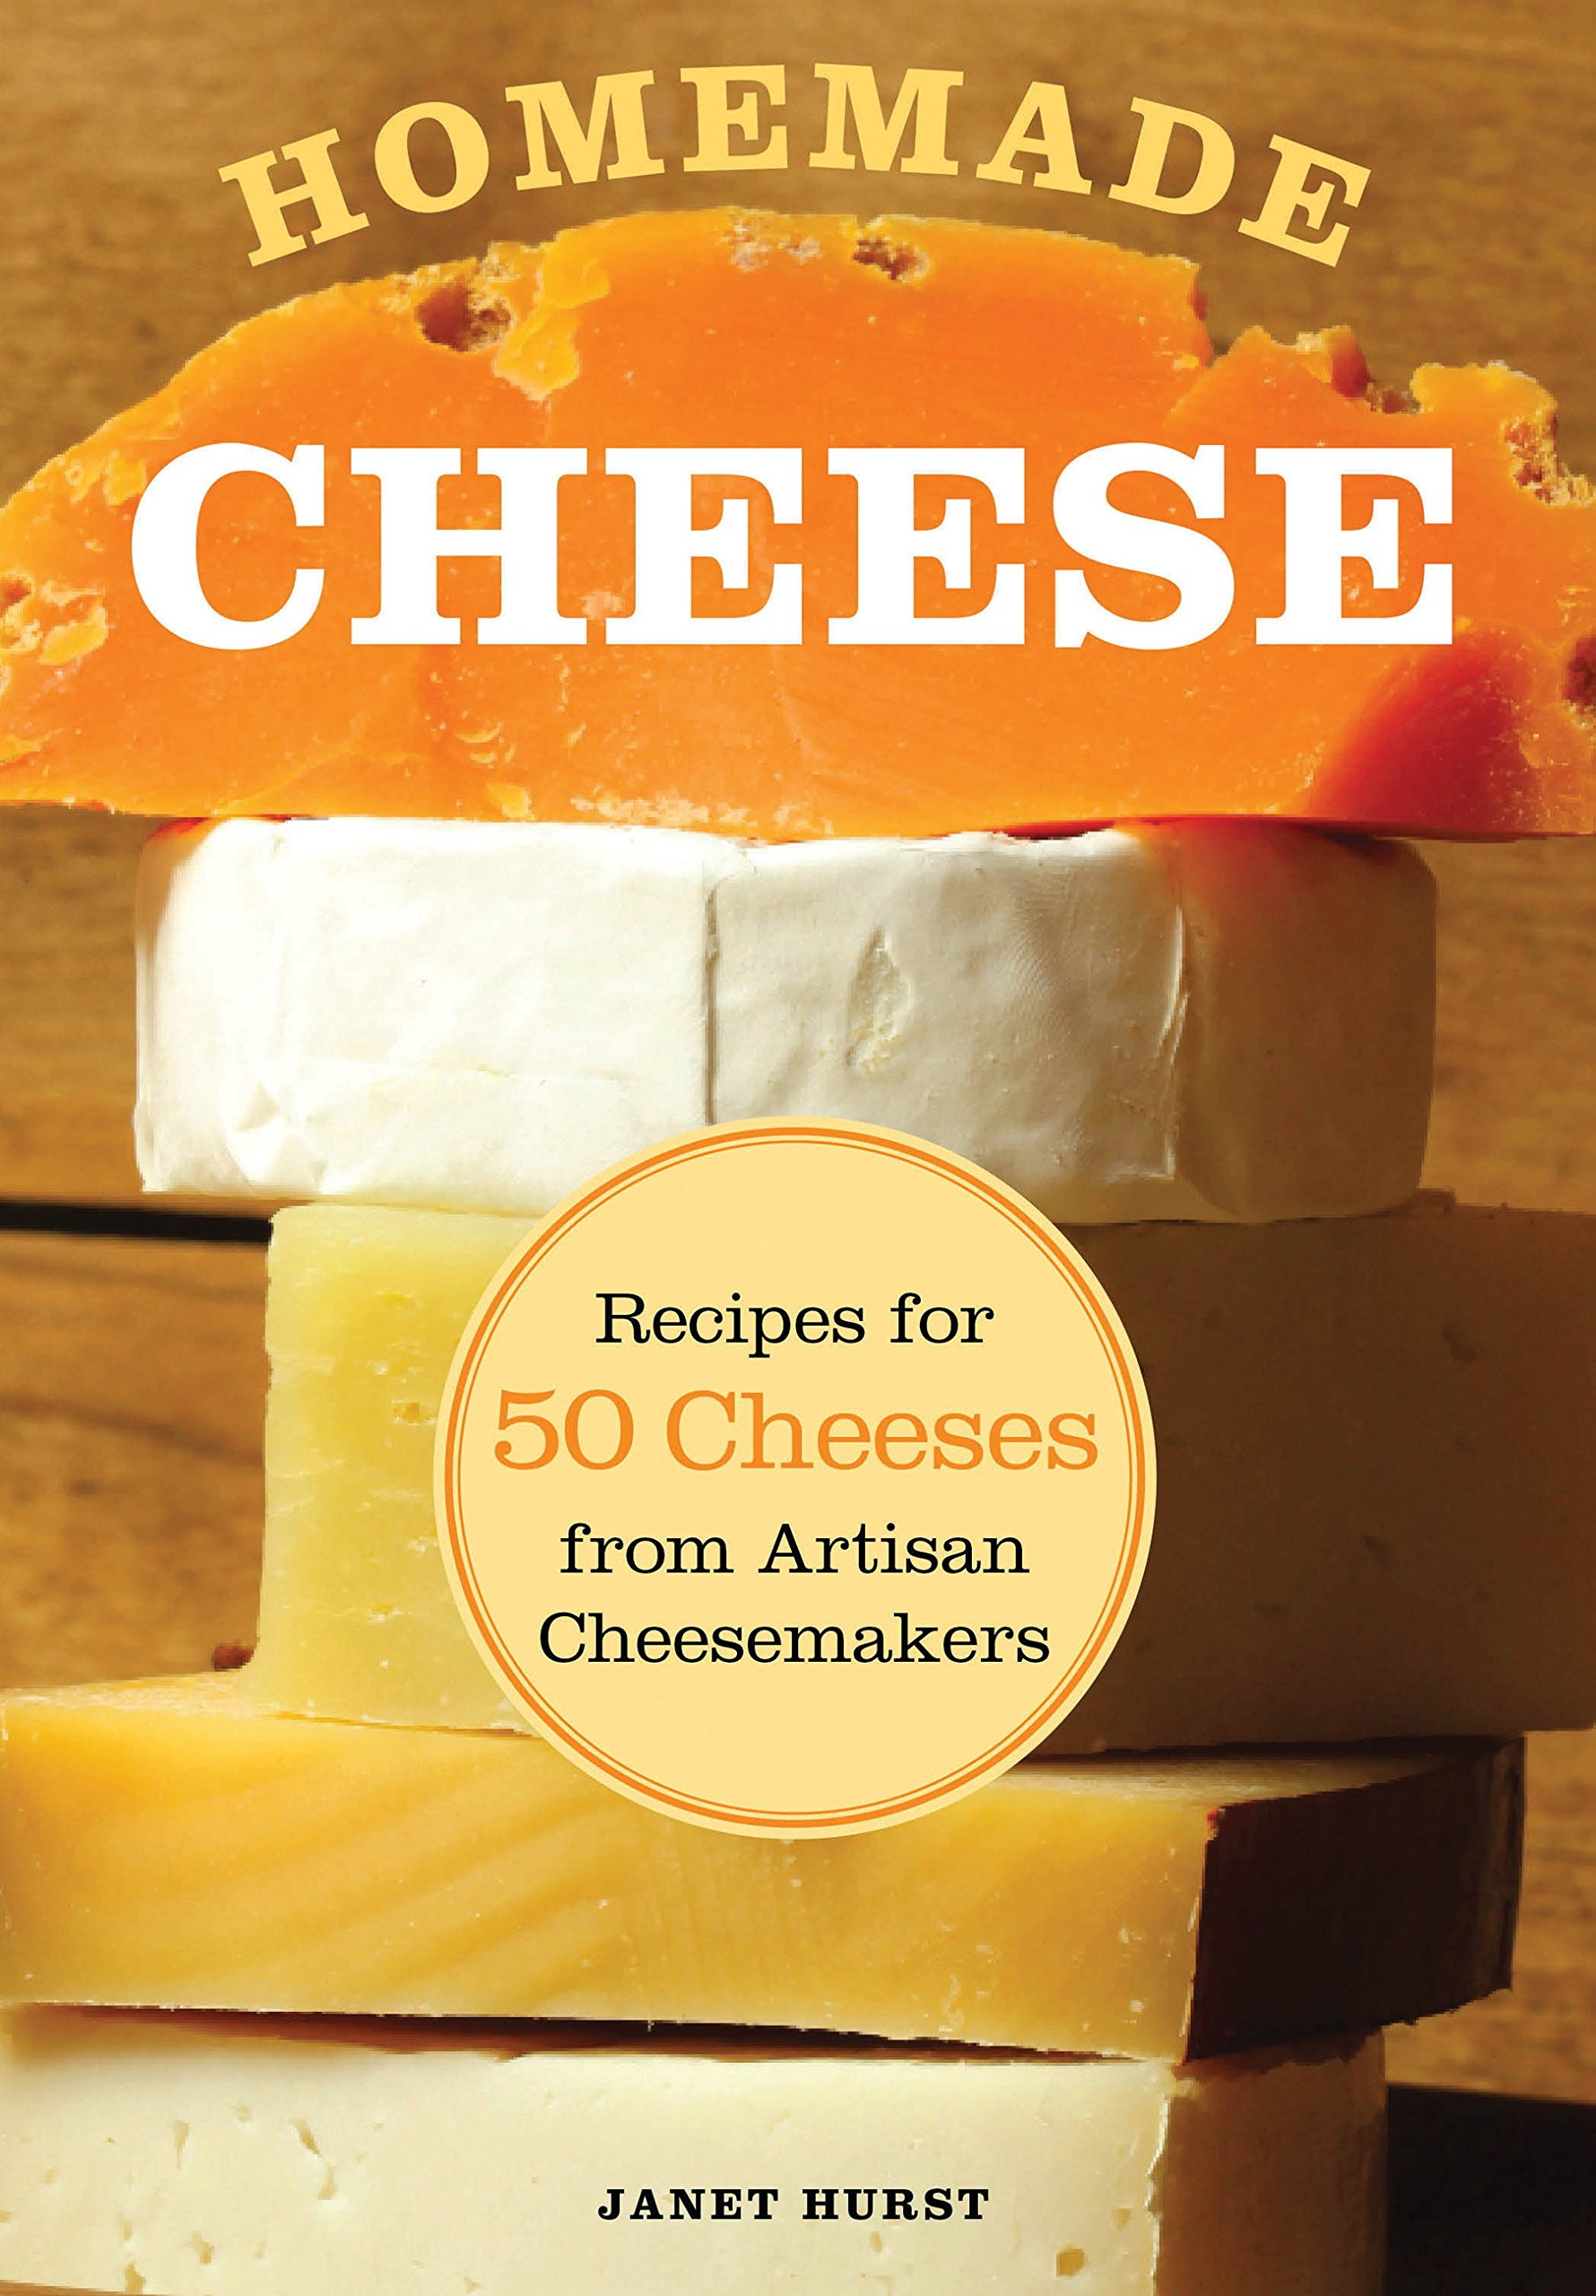 Homemade Cheese Recipes Cheeses Cheesemakers product image